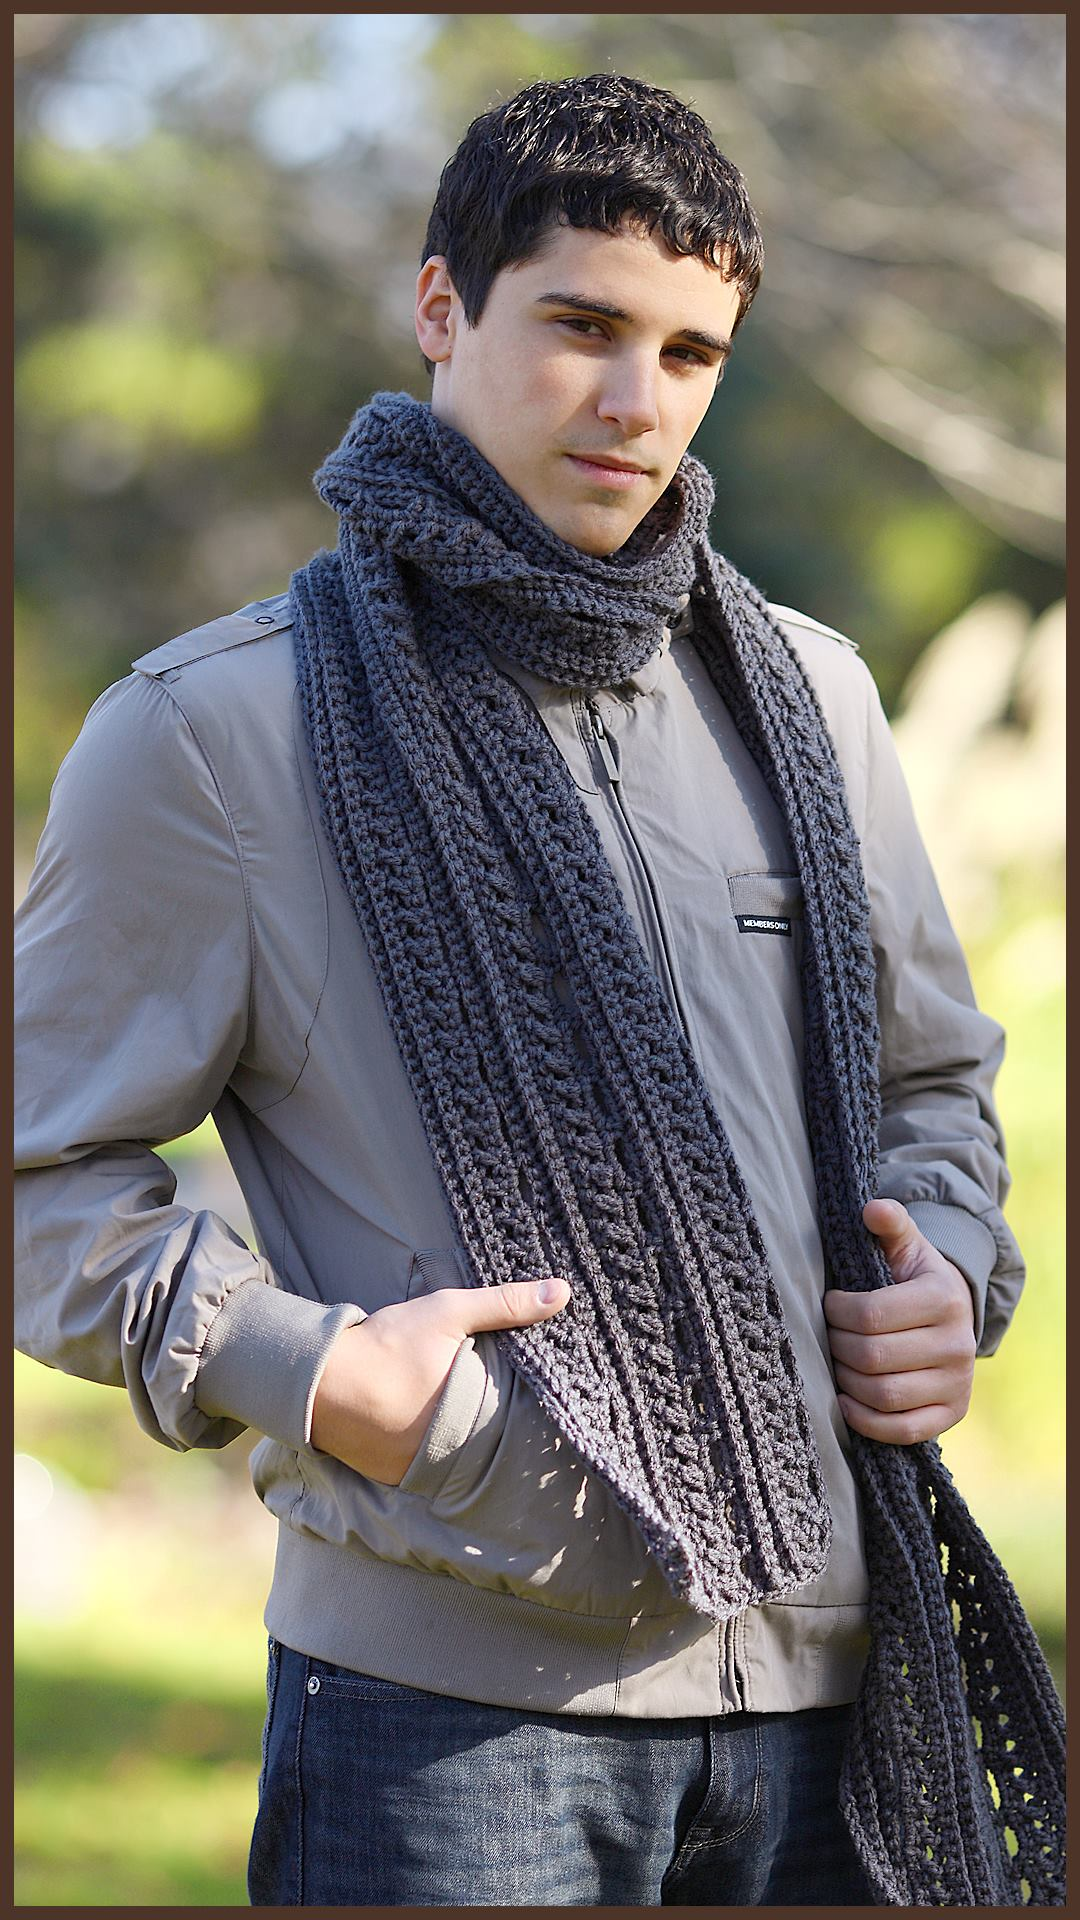 Crochet Tutorial The Gentleman S Scarf Yarnutopia By Nadia Fuad Yarnutopia By Nadia Fuad